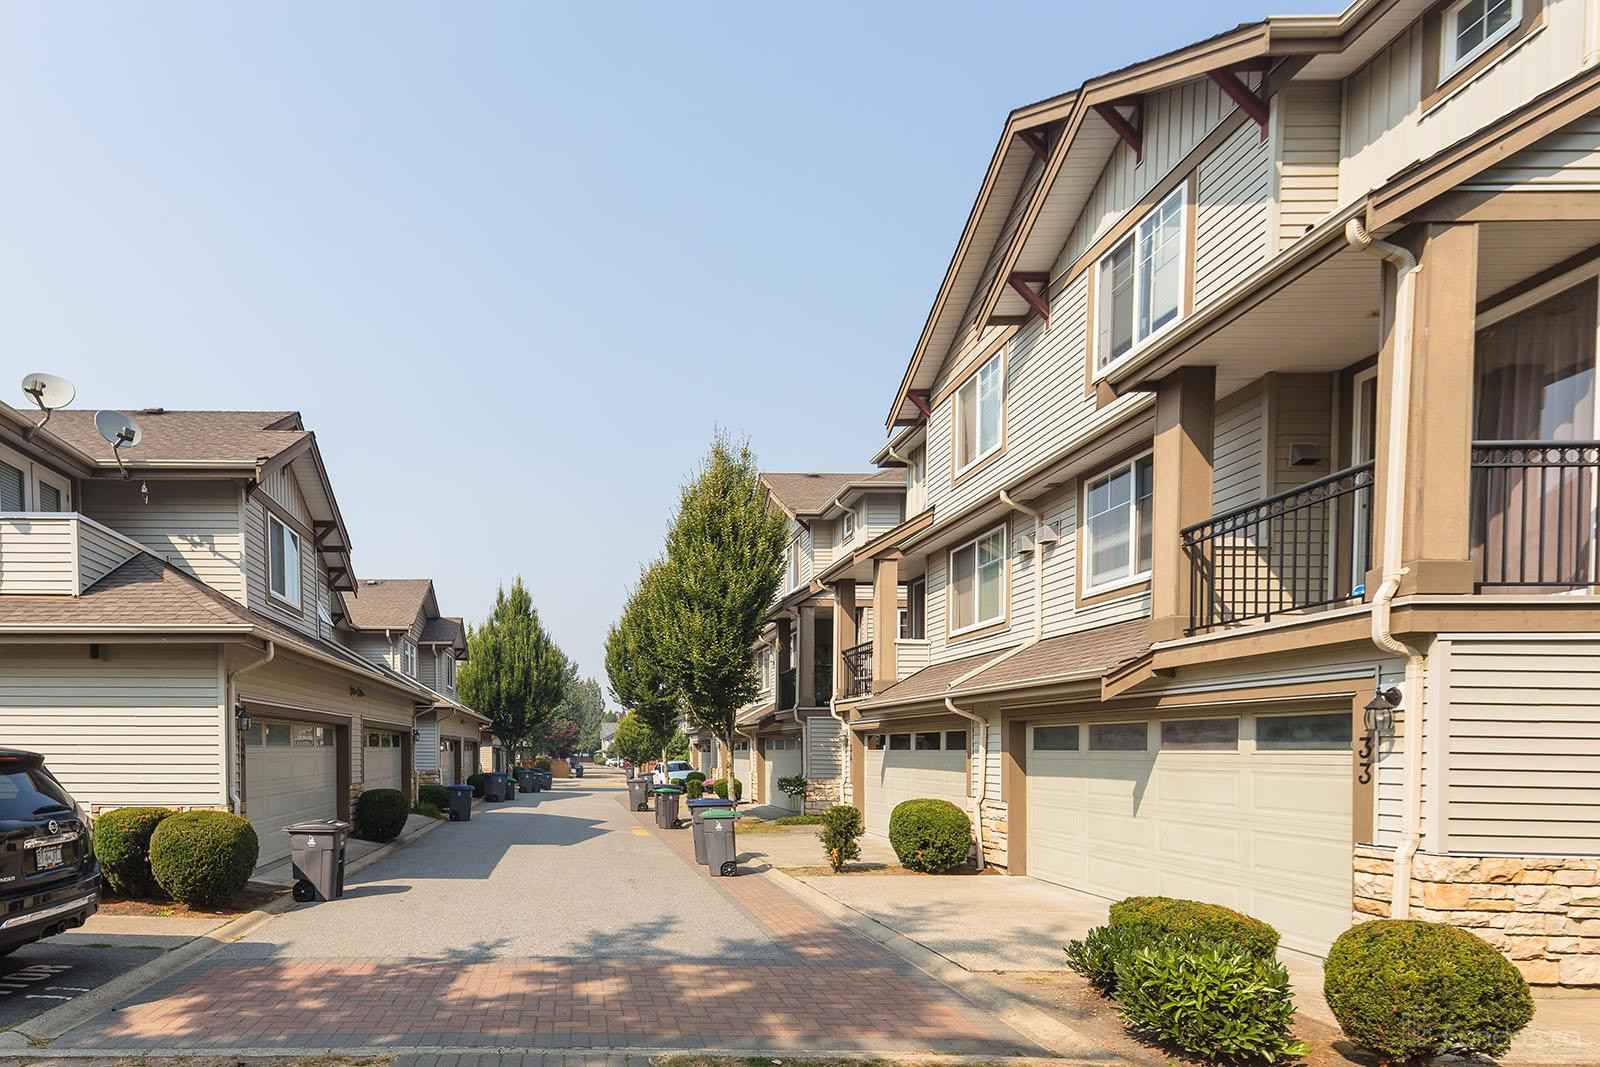 Sequoia Green at 14453 72 Ave, Surrey 1